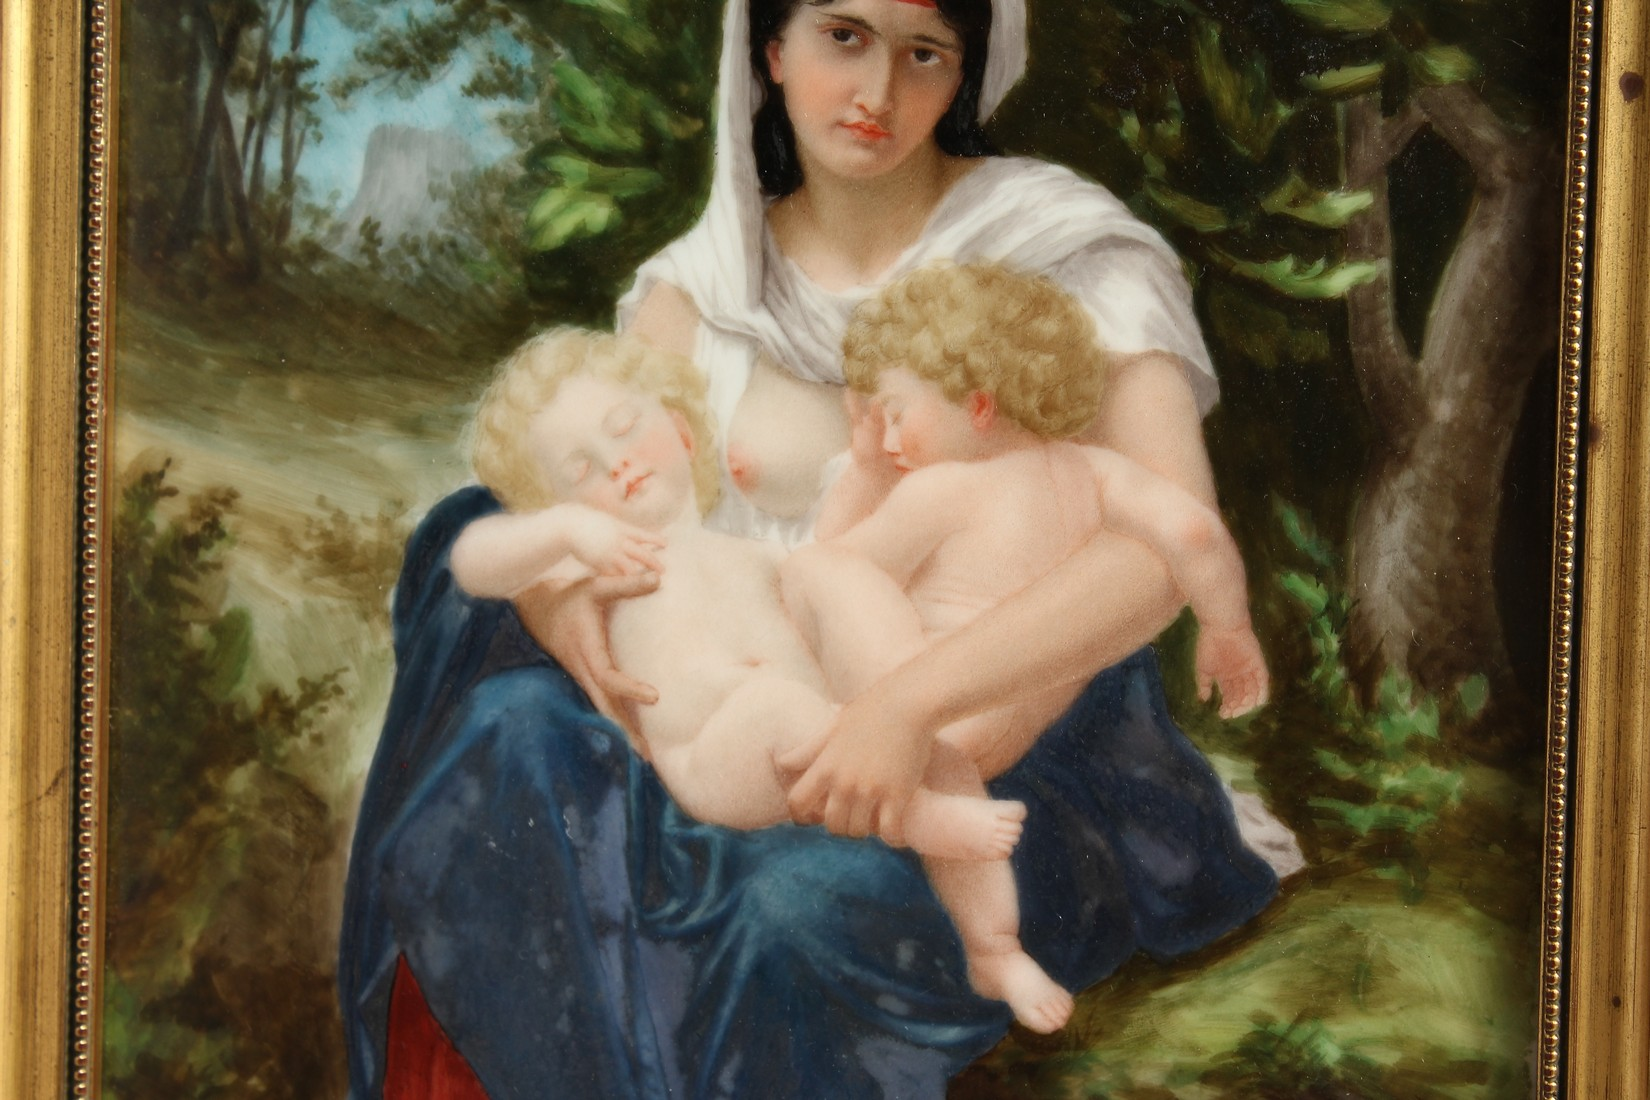 A VERY GOOD GERMAN PORCELAIN PLAQUE, Madonna and child 11.25 x 7.5ins - Image 4 of 7